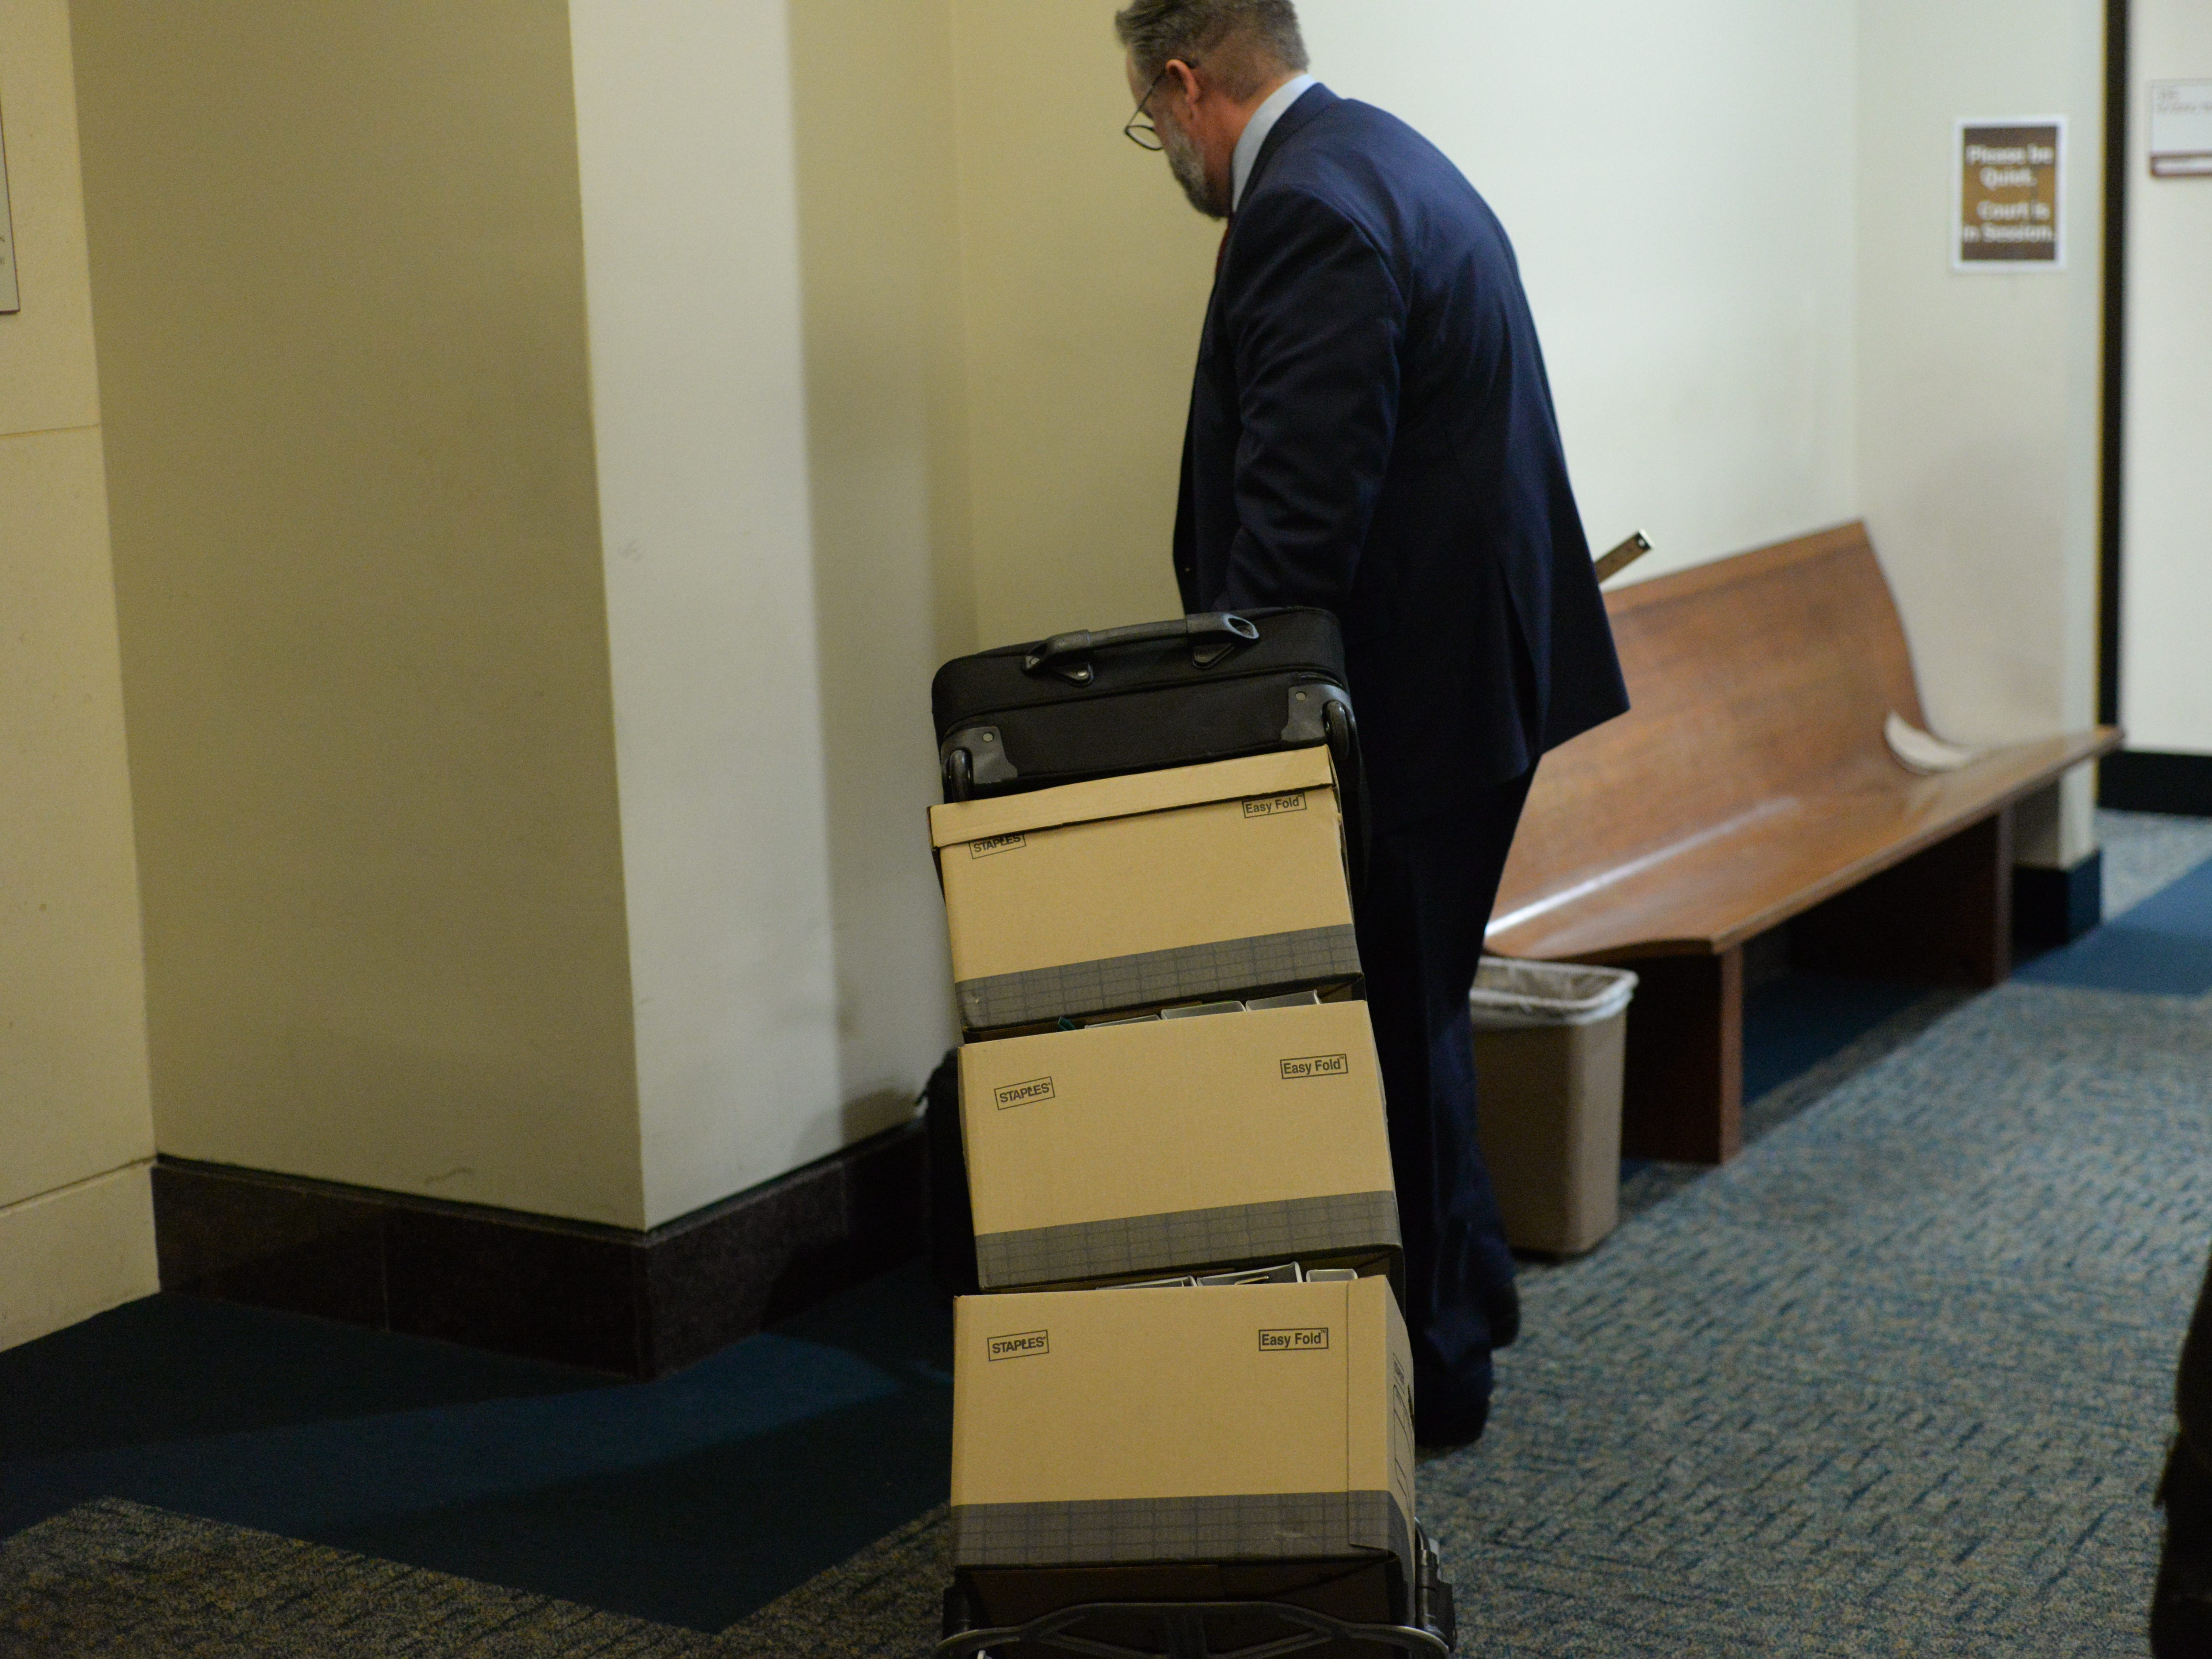 Attorney for Denise Williams, Ethan Way, packs up his case files after the verdict is read in the trial of Denise Williams, convicting her of the murder of her husband Mike Williams at the Leon County Courthouse Friday, Dec. 14, 2018.